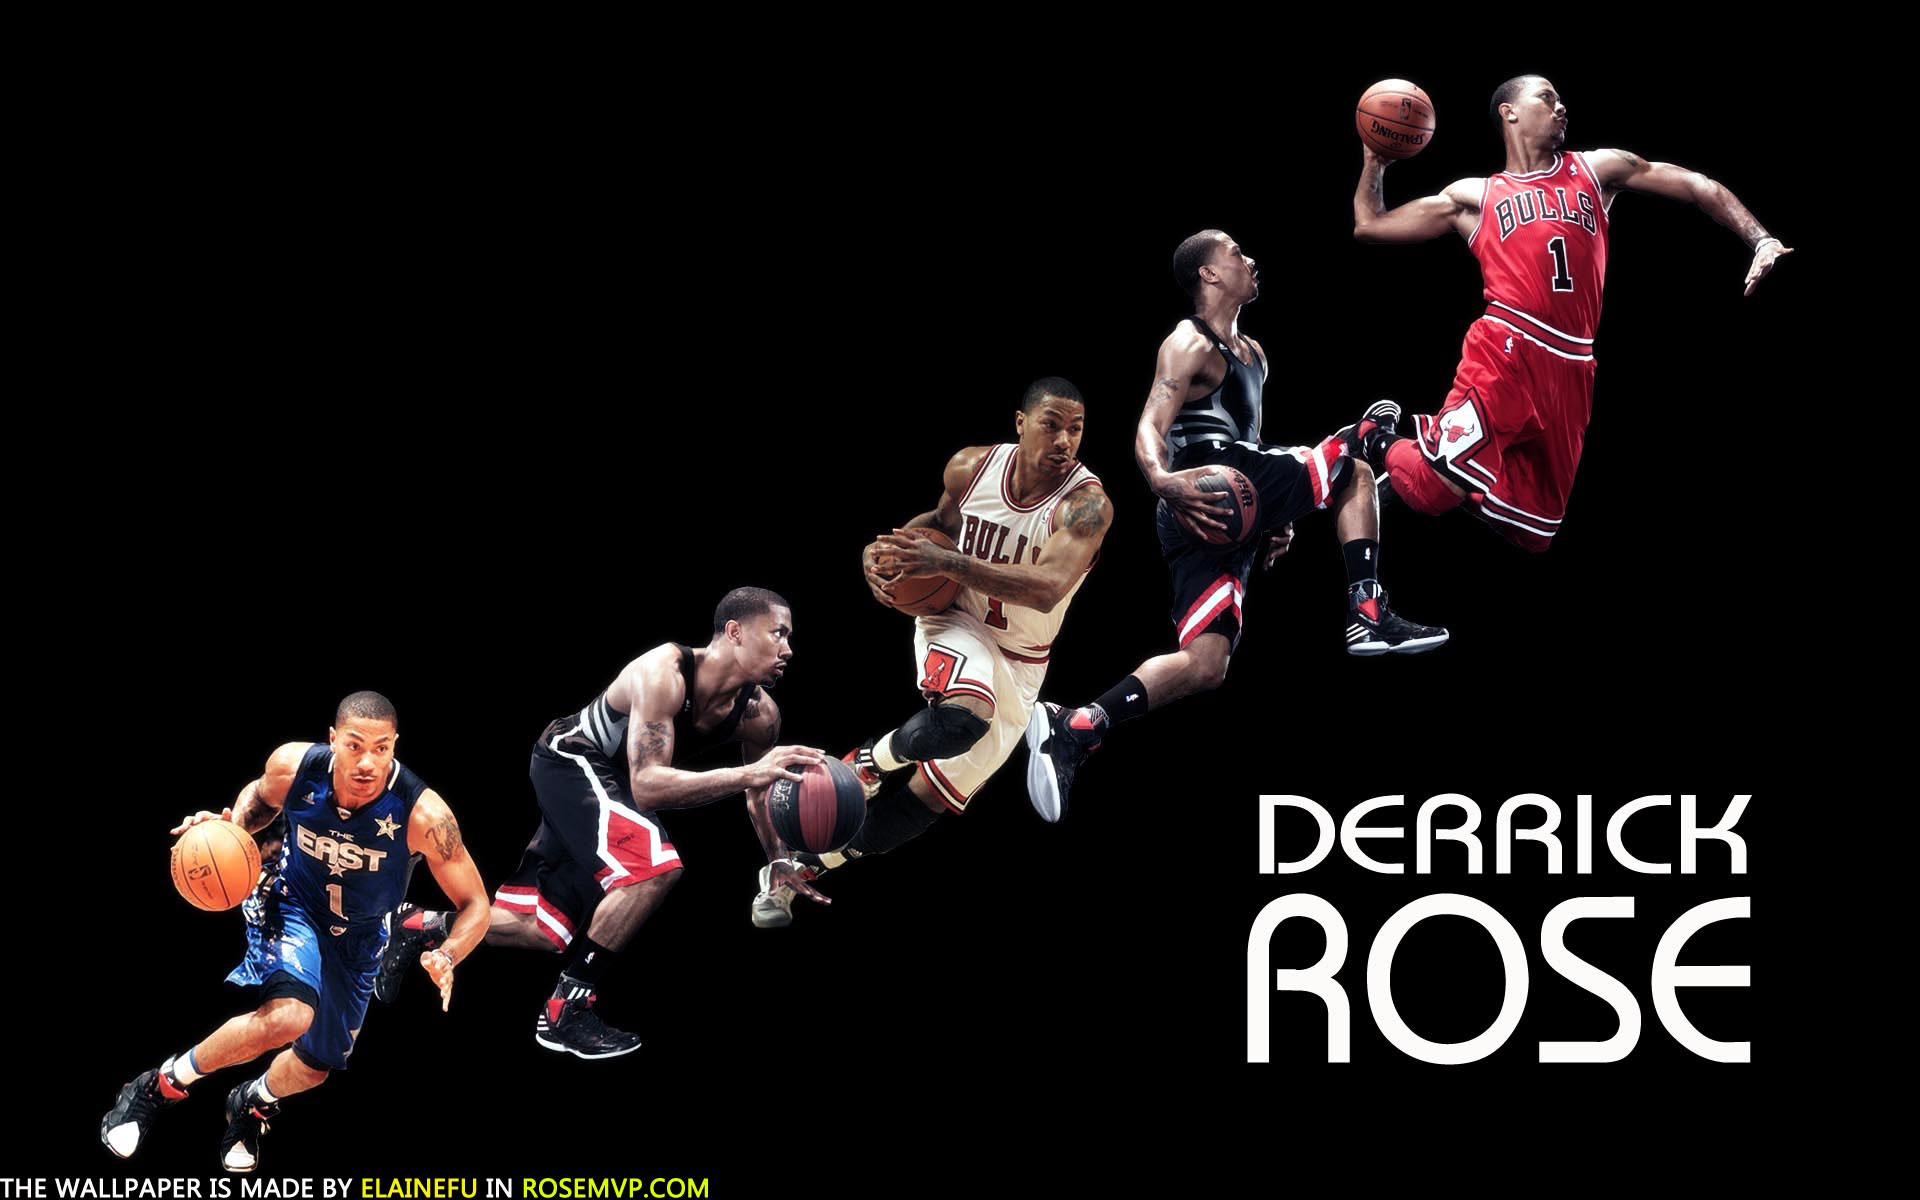 Derrick Rose Wallpapers HD Wallpapers Early 1920x1200